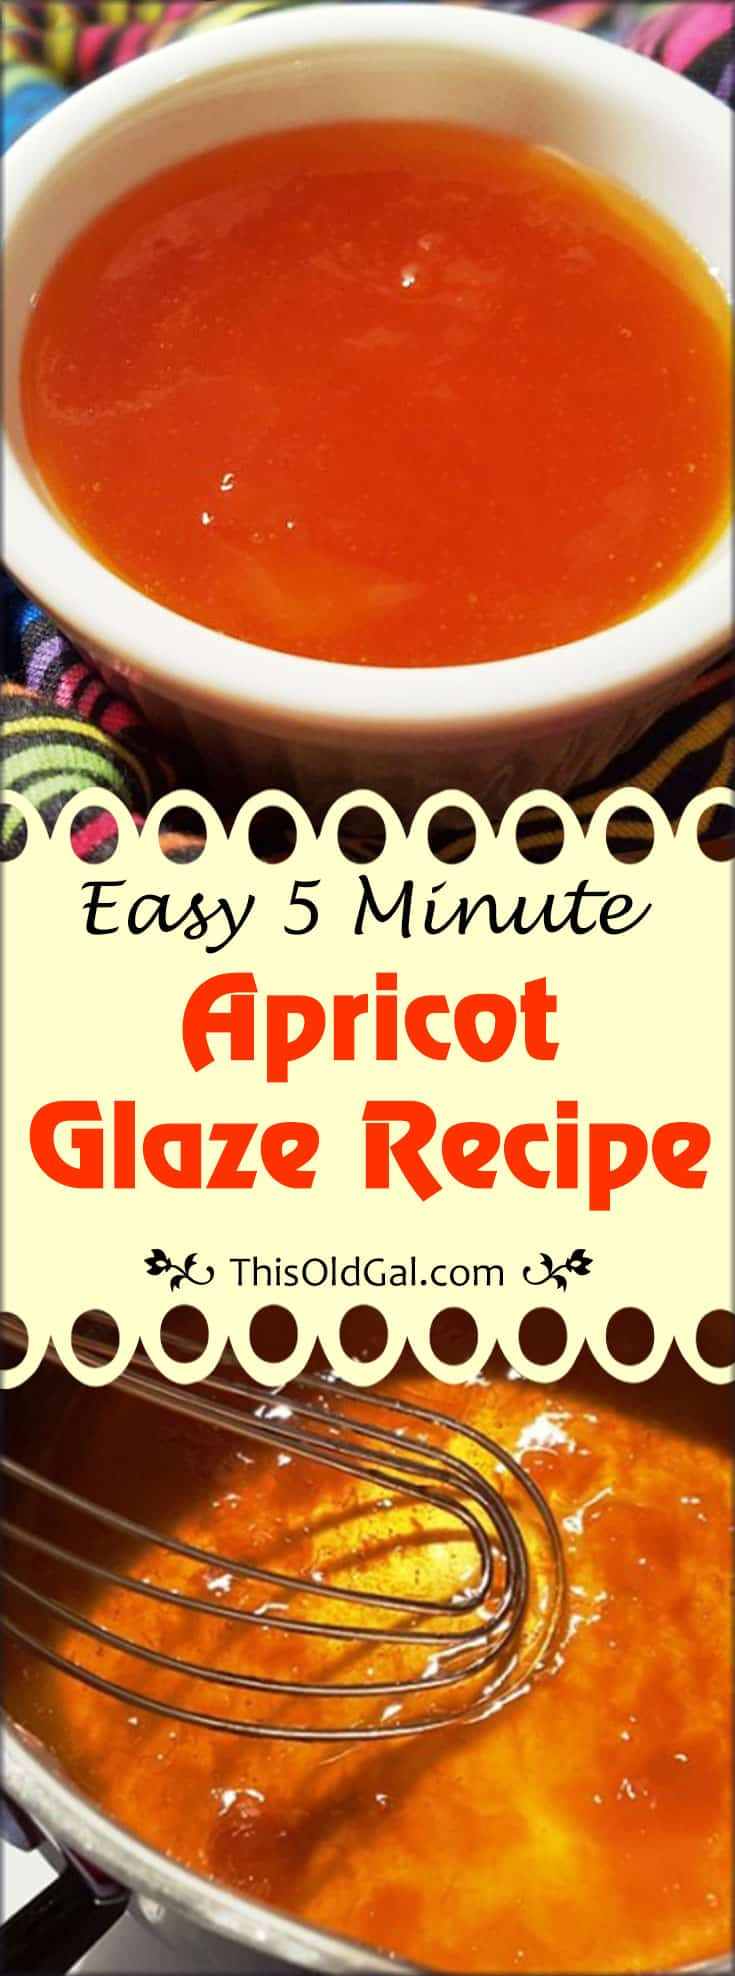 5 Minute Makeup Must Haves: Easy 5 Minute Apricot Glaze Recipe